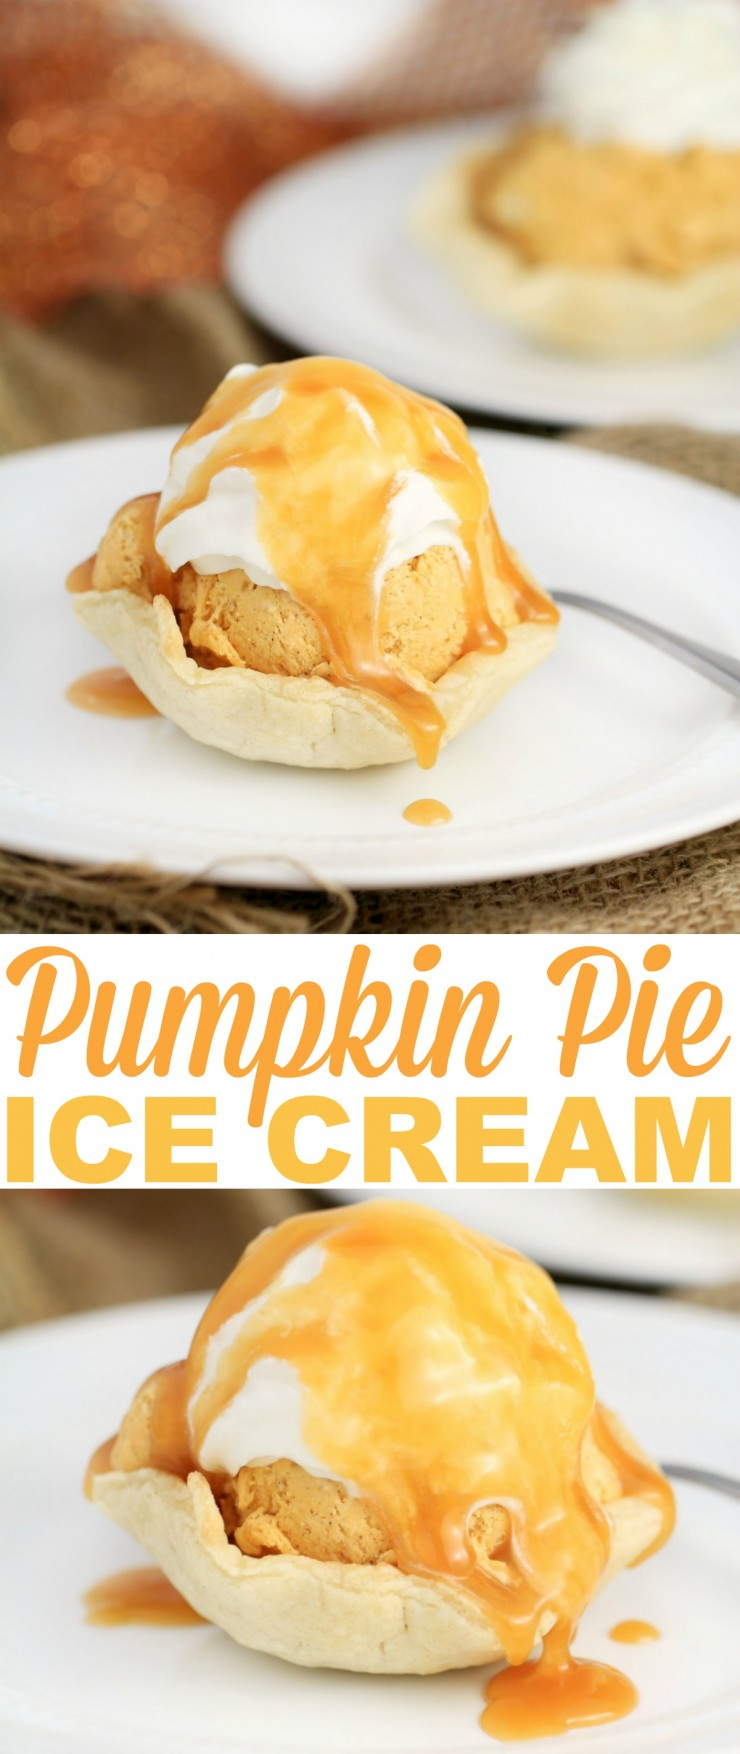 Pumpkin Pie is a crowd favourite and this delicious No-Churn Pumpkin Spice Ice Cream is served in flaky pastry bowls. This cold treat is perfectly creamy and tastes just like pumpkin pie.